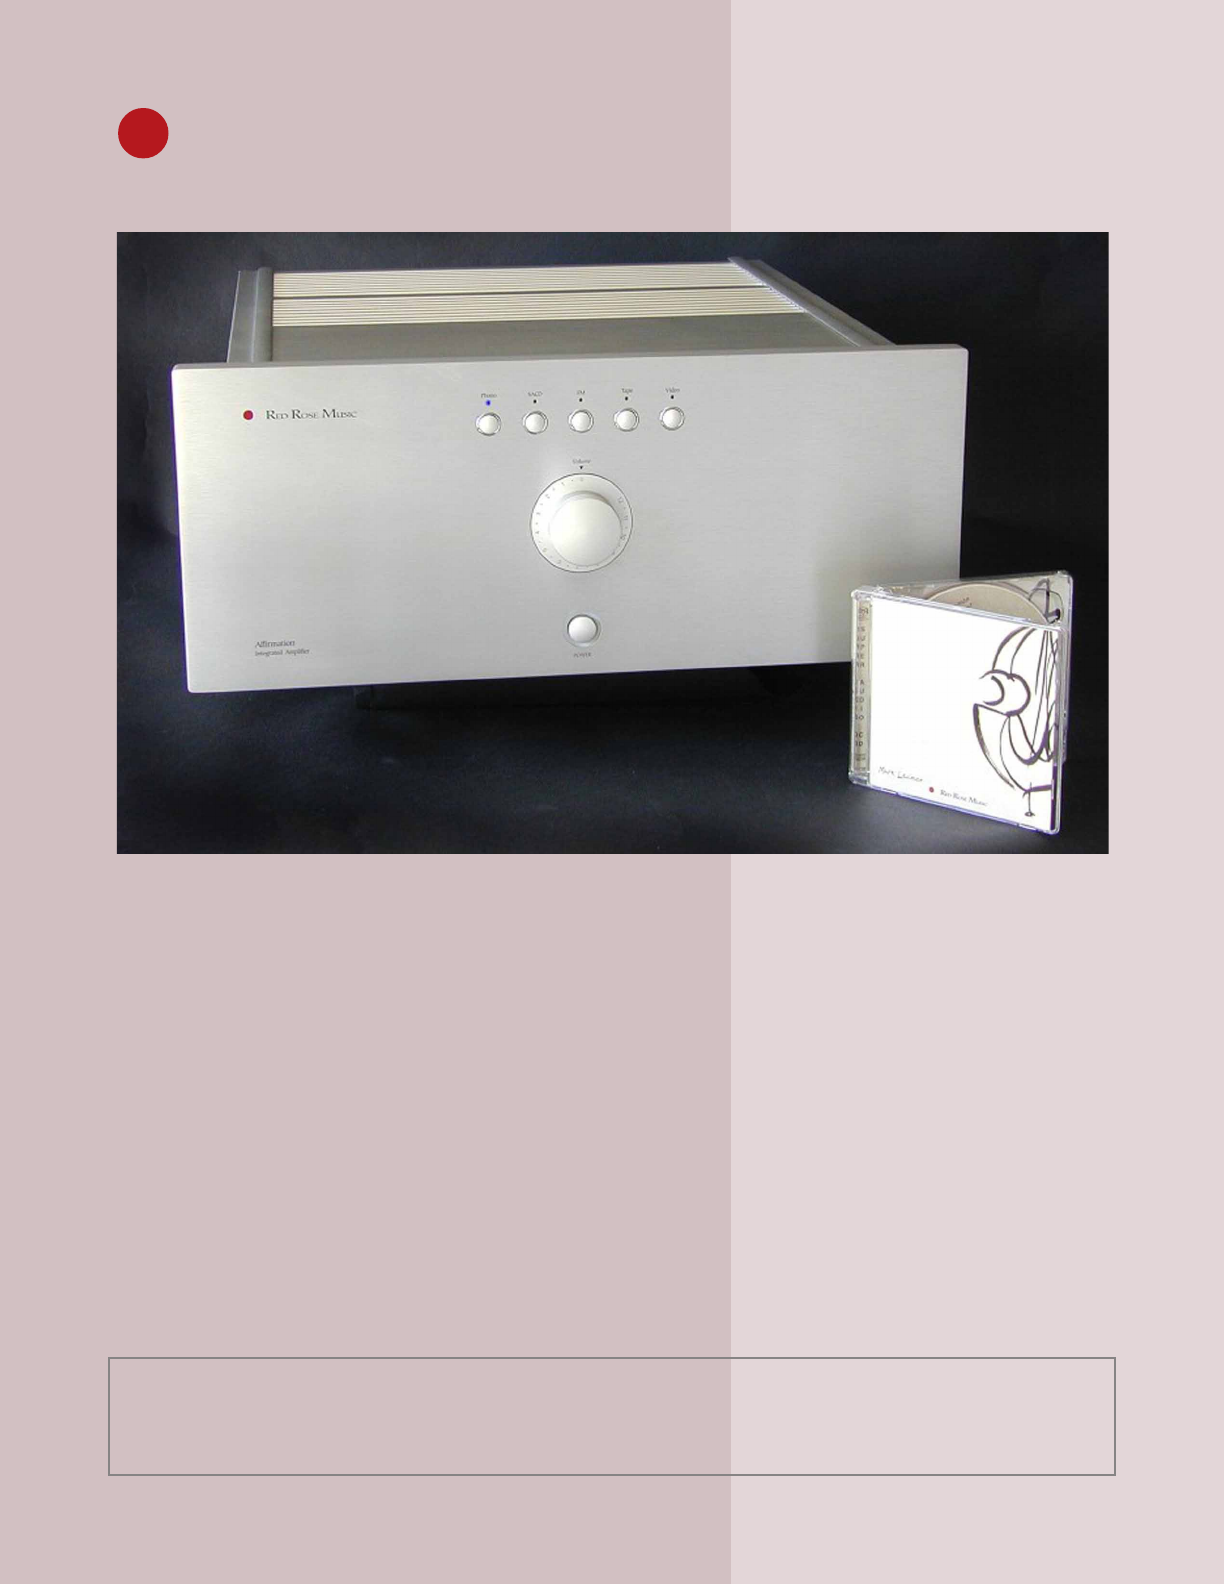 Red Rose Music Stereo Amplifier Affirmation User Guide